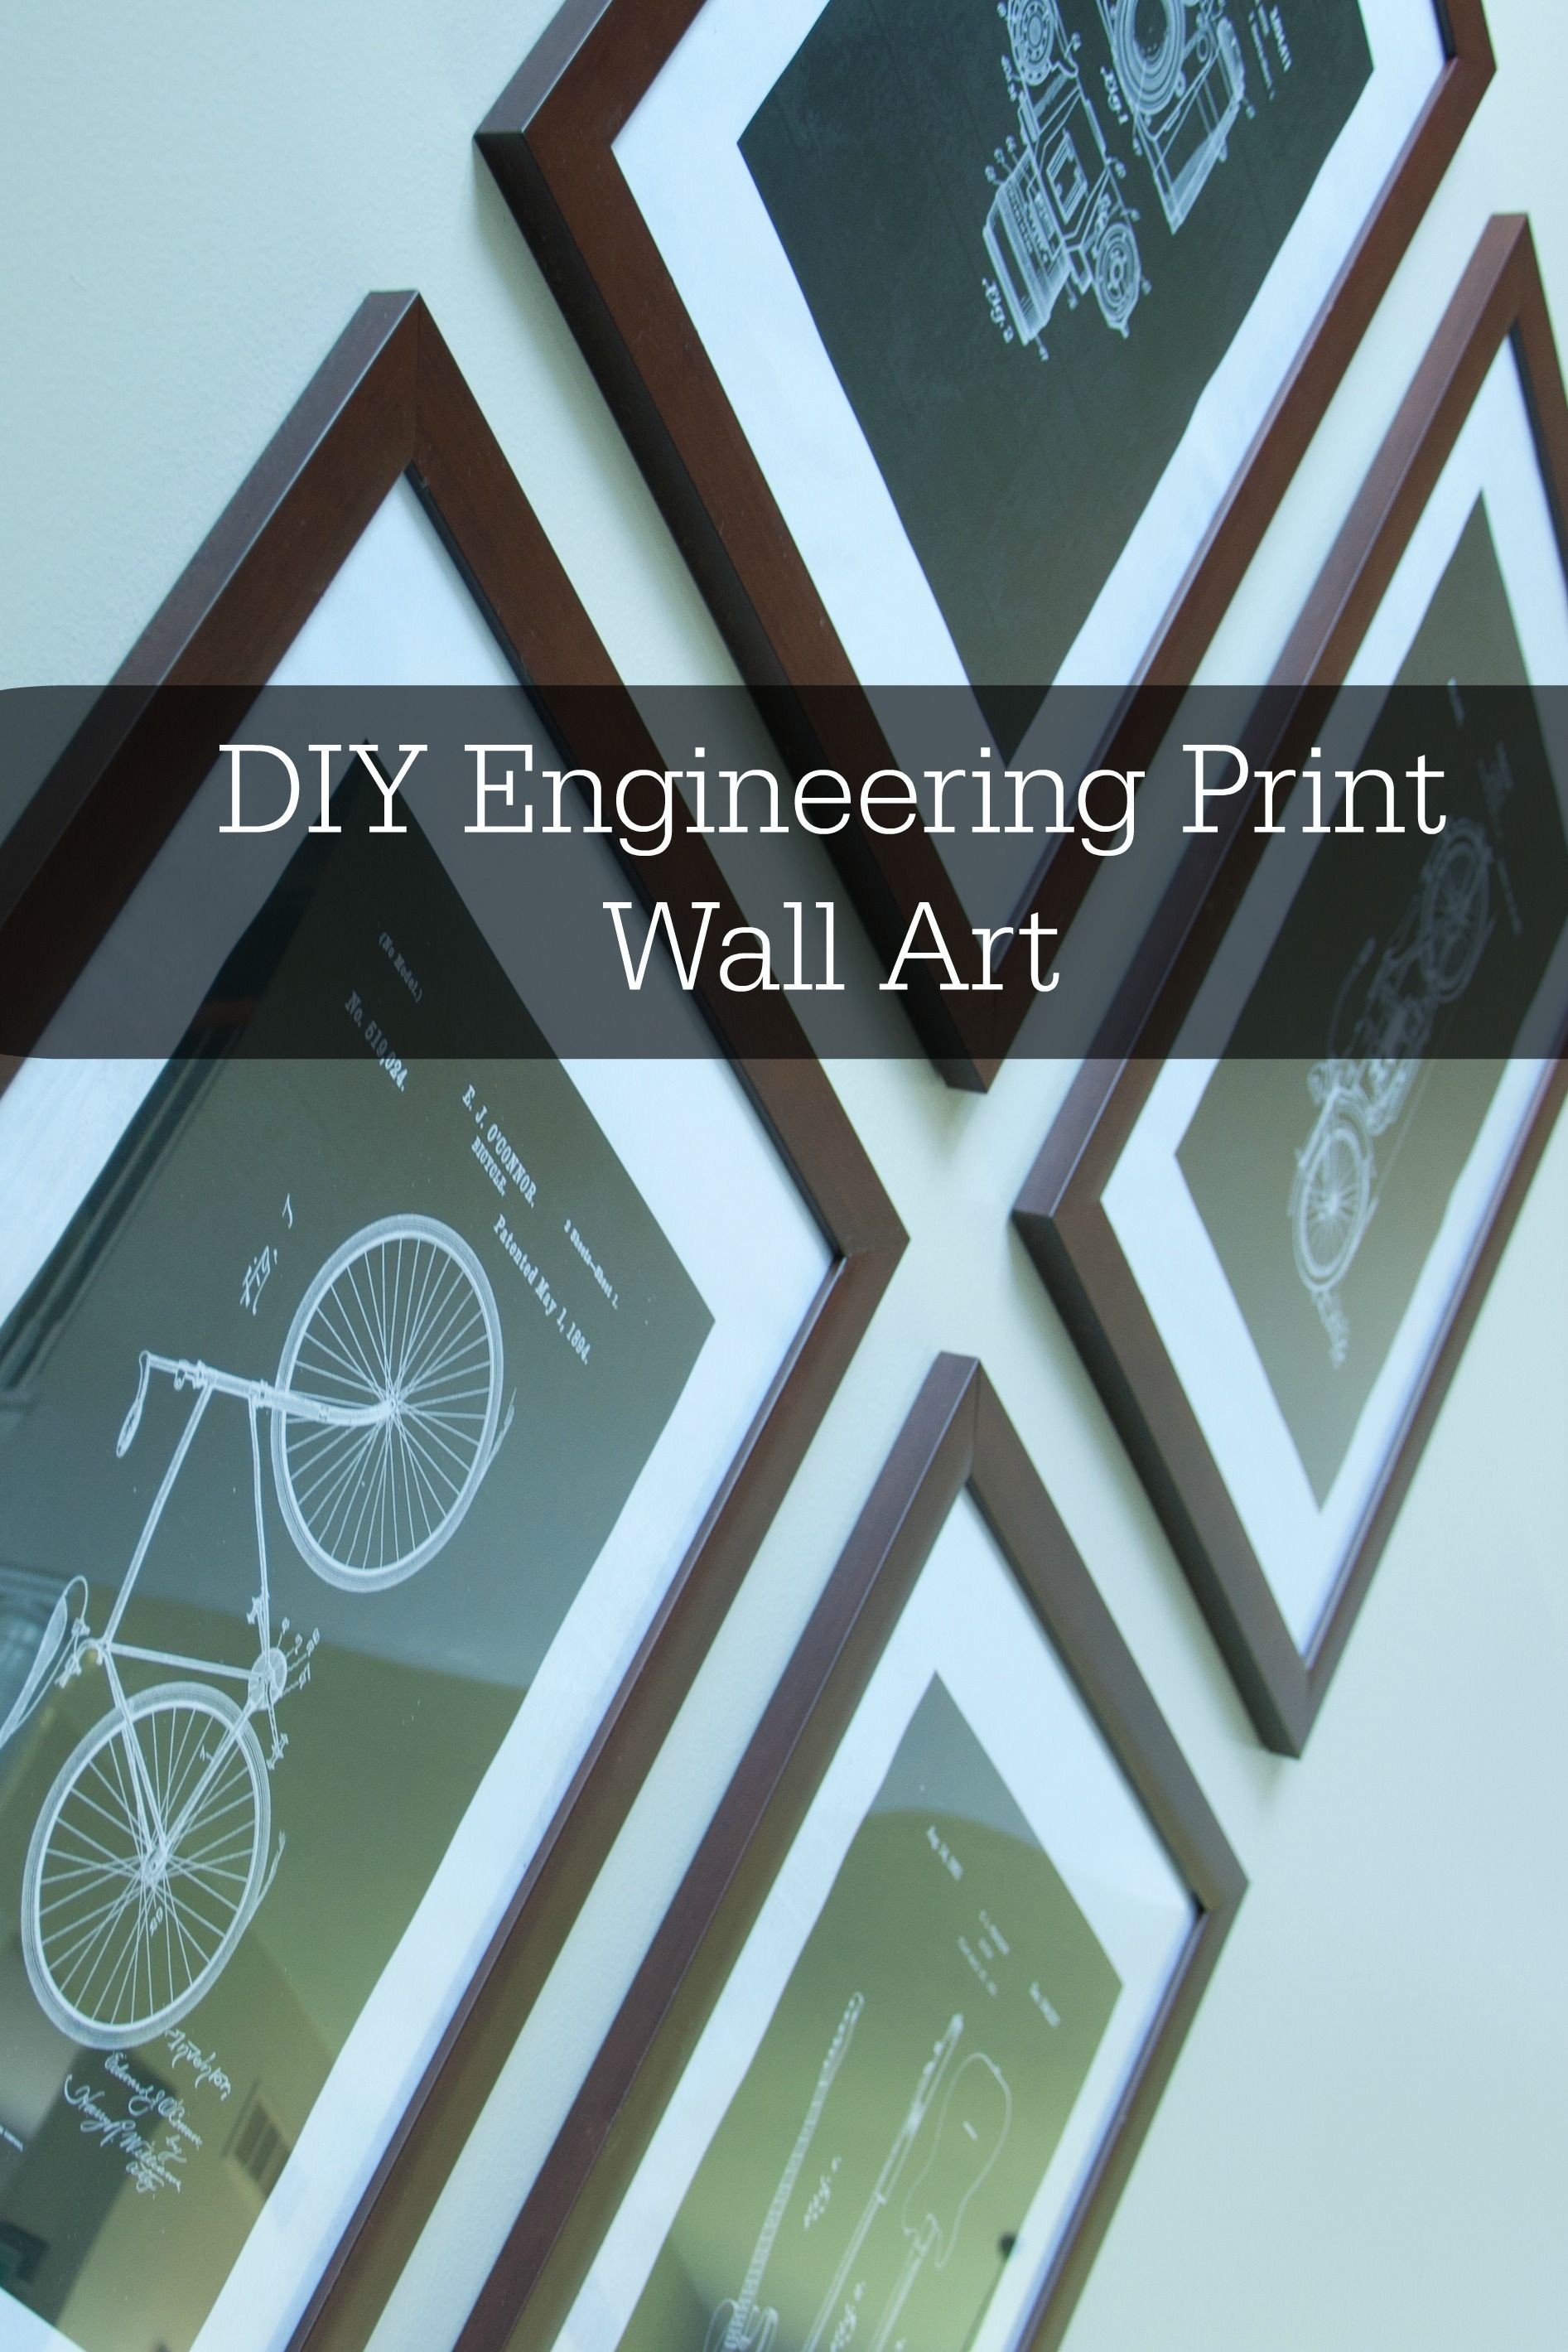 Create affordable large scale wall art with diy engineering prints